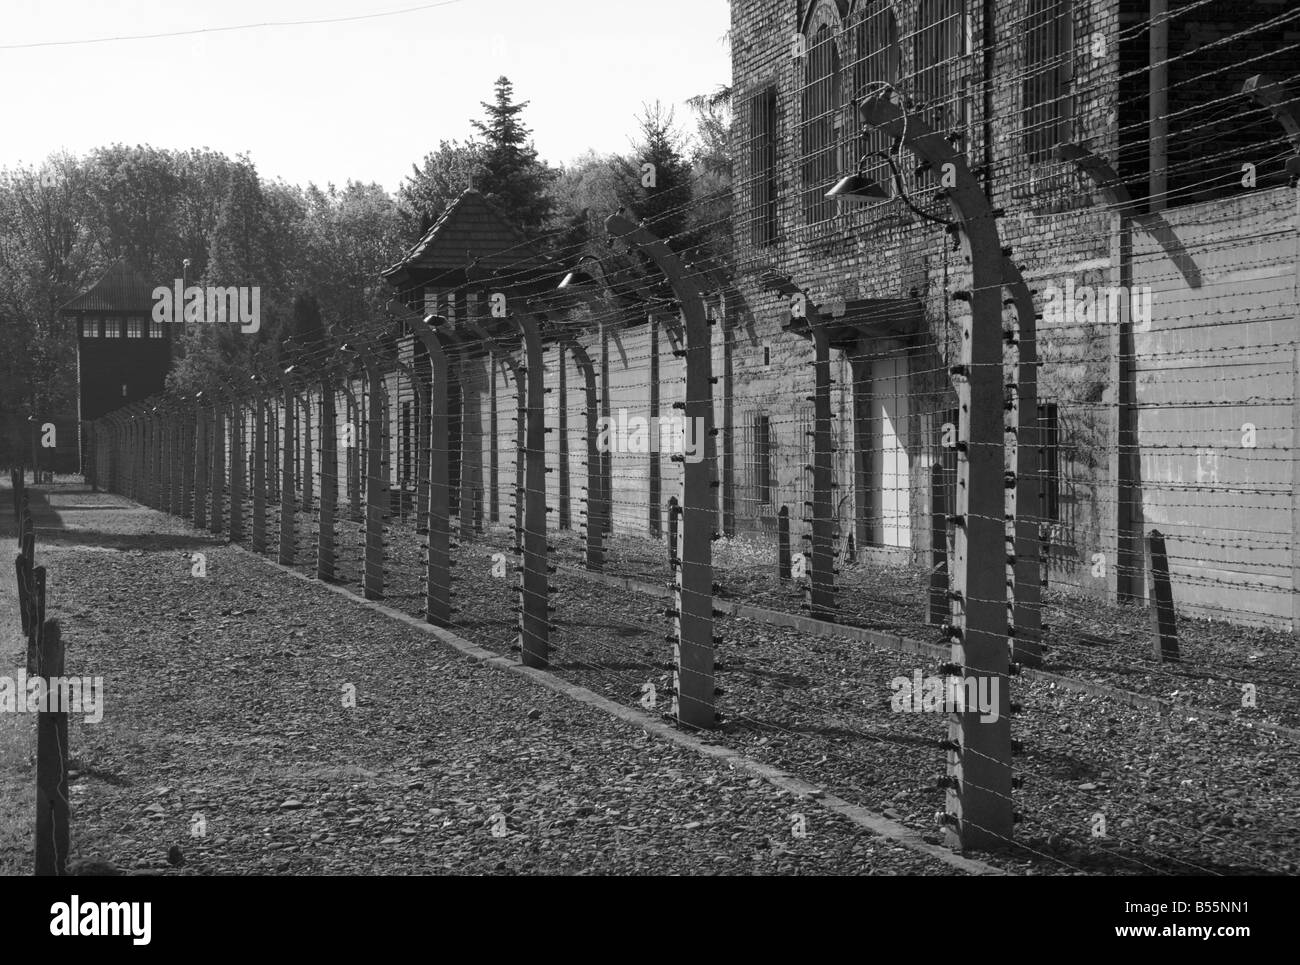 Barbed Wire Fence Guard Tower Stock Photos & Barbed Wire Fence Guard ...